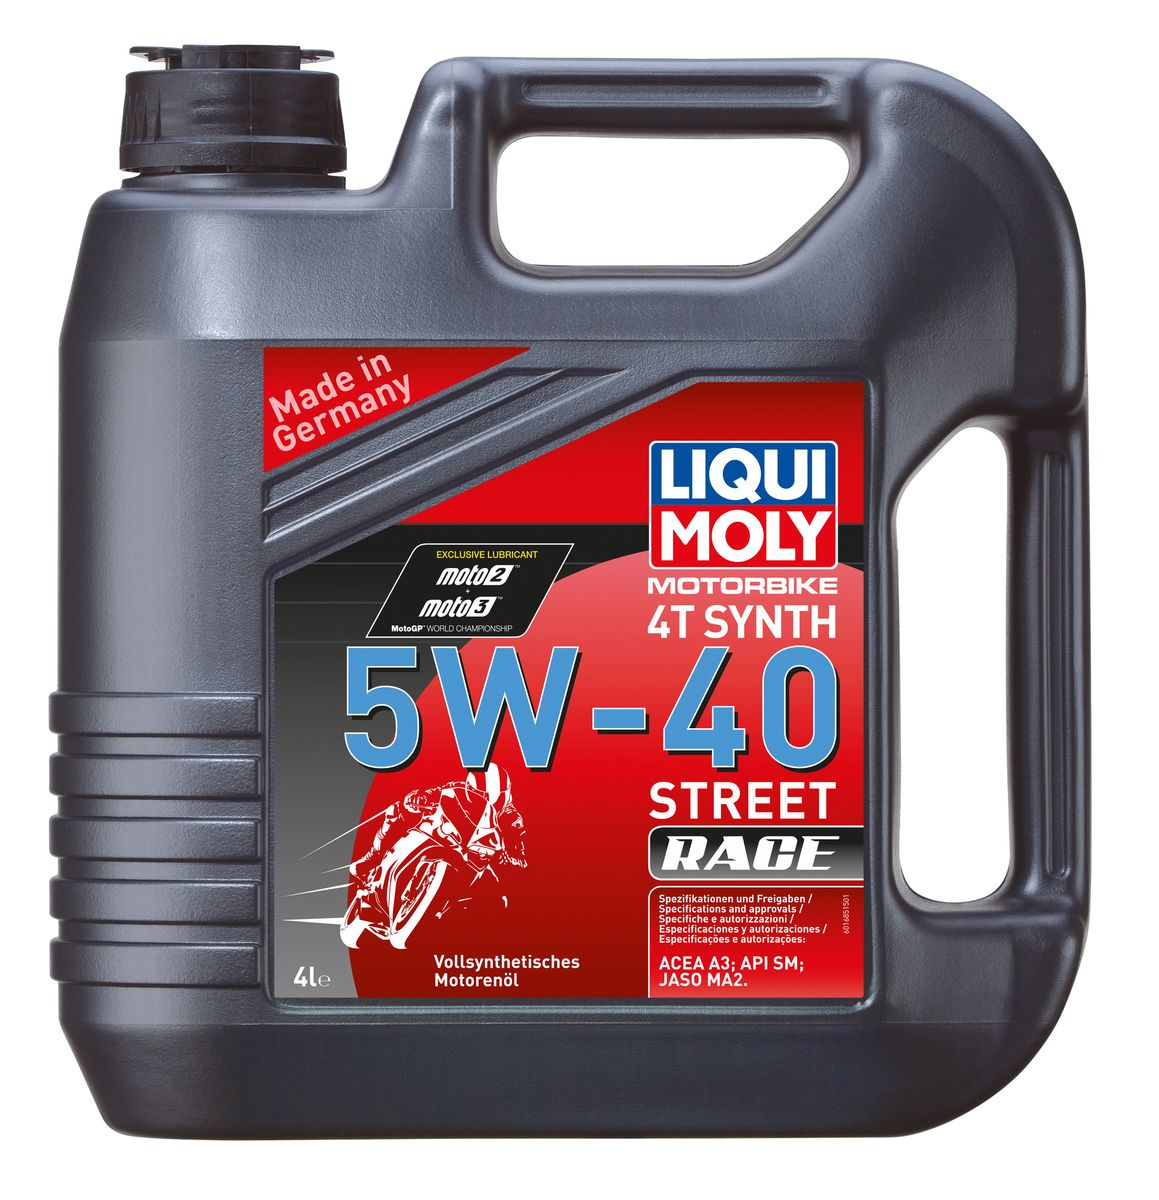 Масло моторное Liqui Moly Motorbike 4T Synth Street Race, синтетическое, 5W-40, 4 л присадка в бензин liqui moly 3040 motorbike speed additiv 0 15л